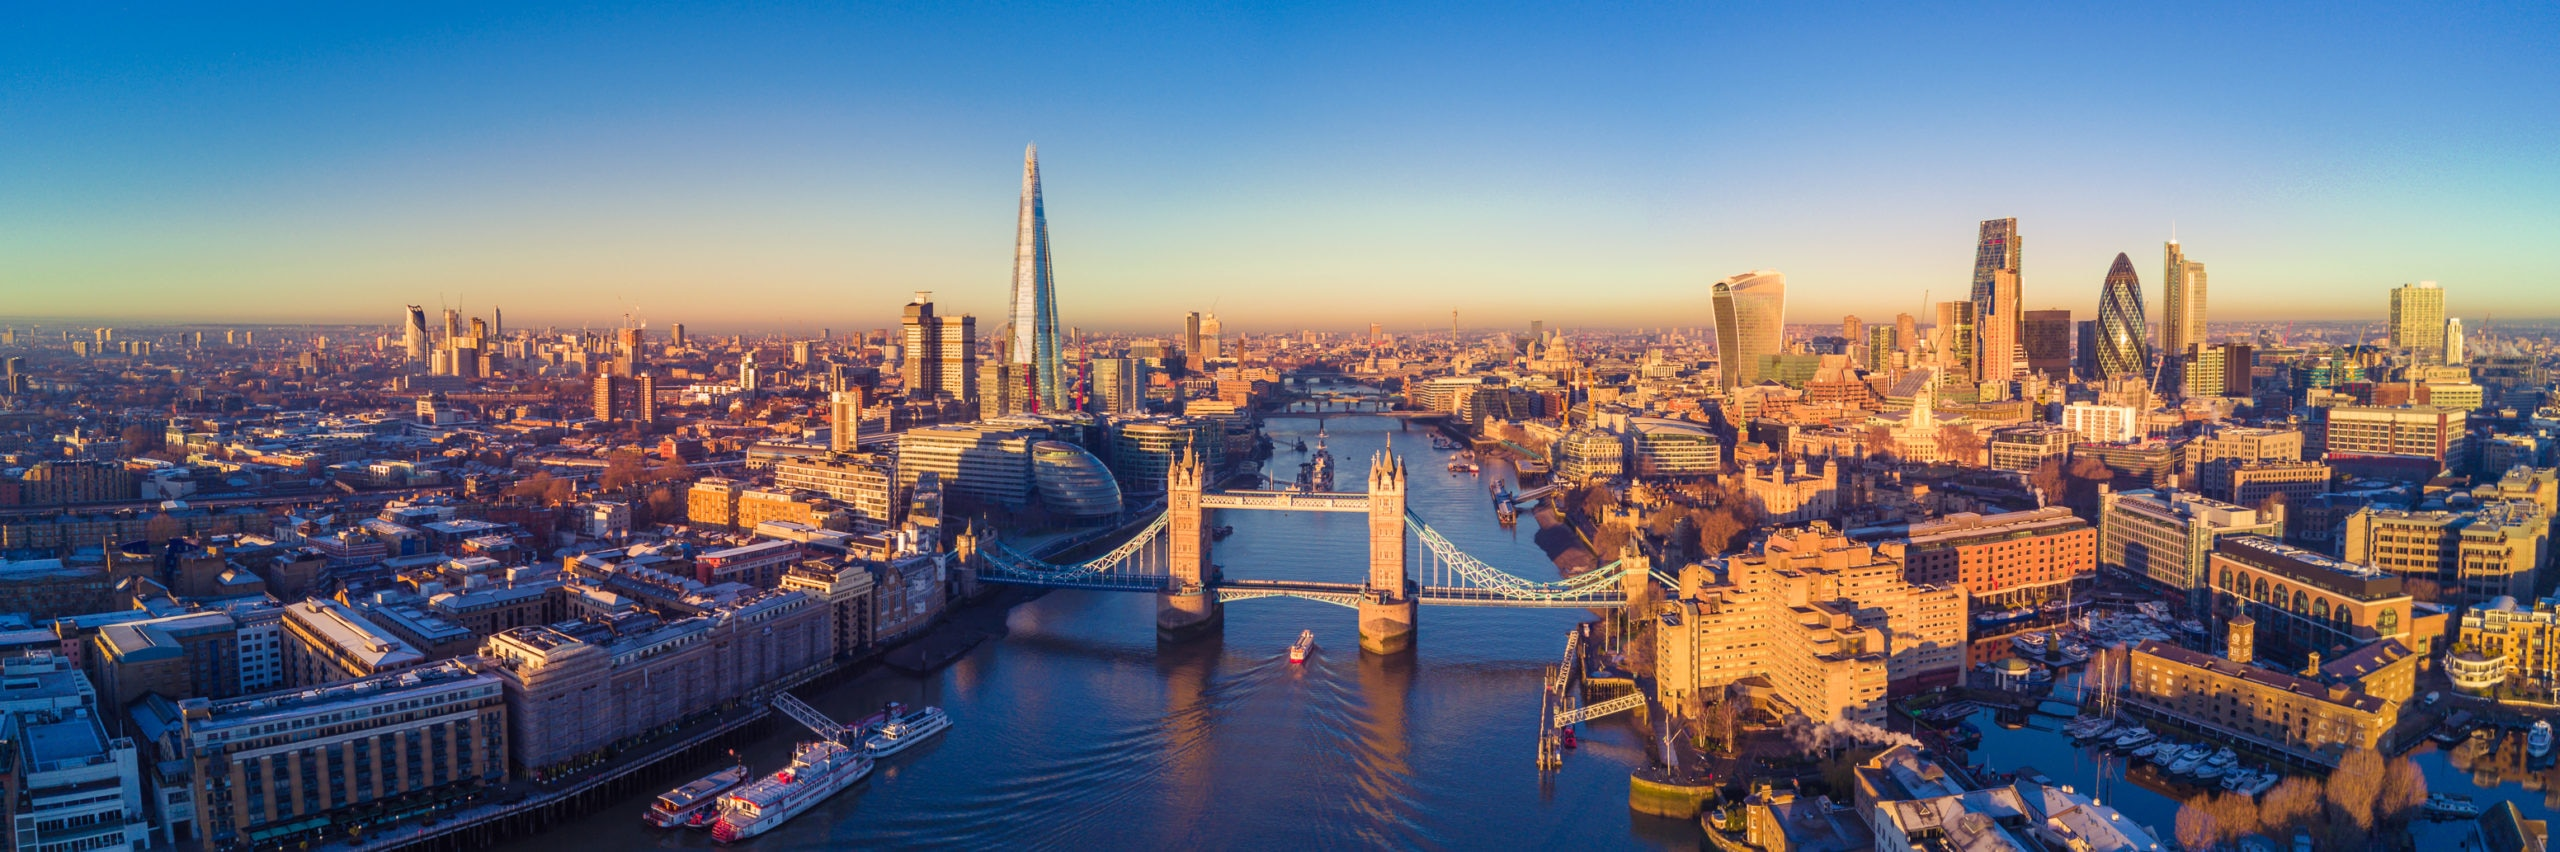 Aerial panoramic cityscape view of London and the River Thames, England, United Kingdom - Image